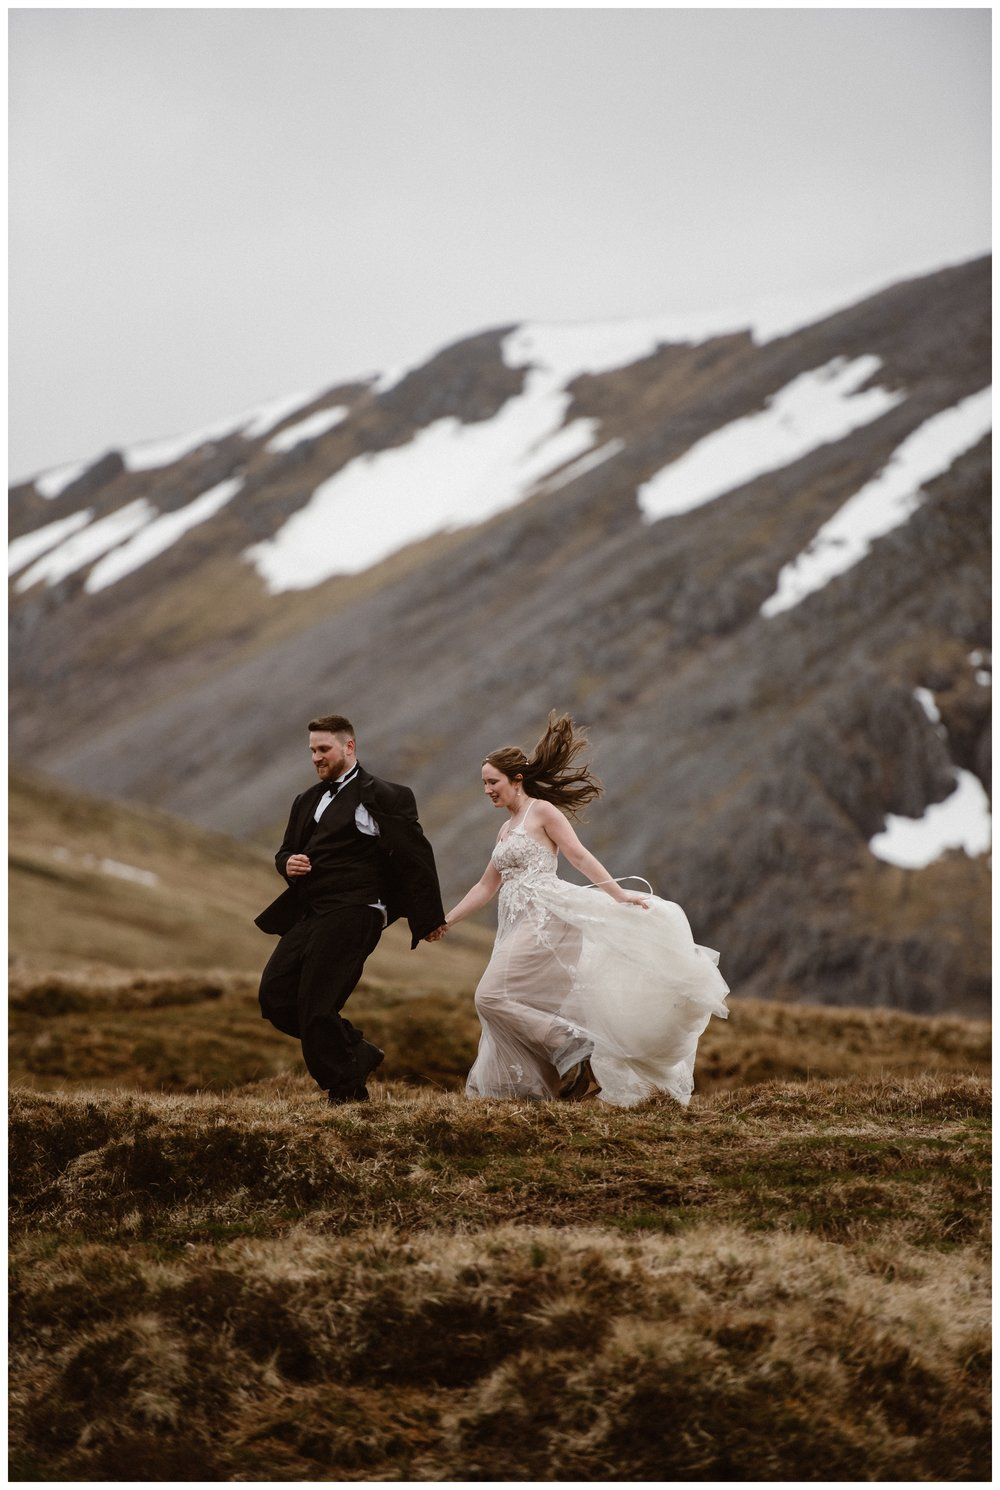 The wind of the Scottish Highlands blows Elissa's wedding dress as she and Dnaiel explore the marshes together before their destination wedding elopement. Photo by Maddie Mae, Adventure Instead.